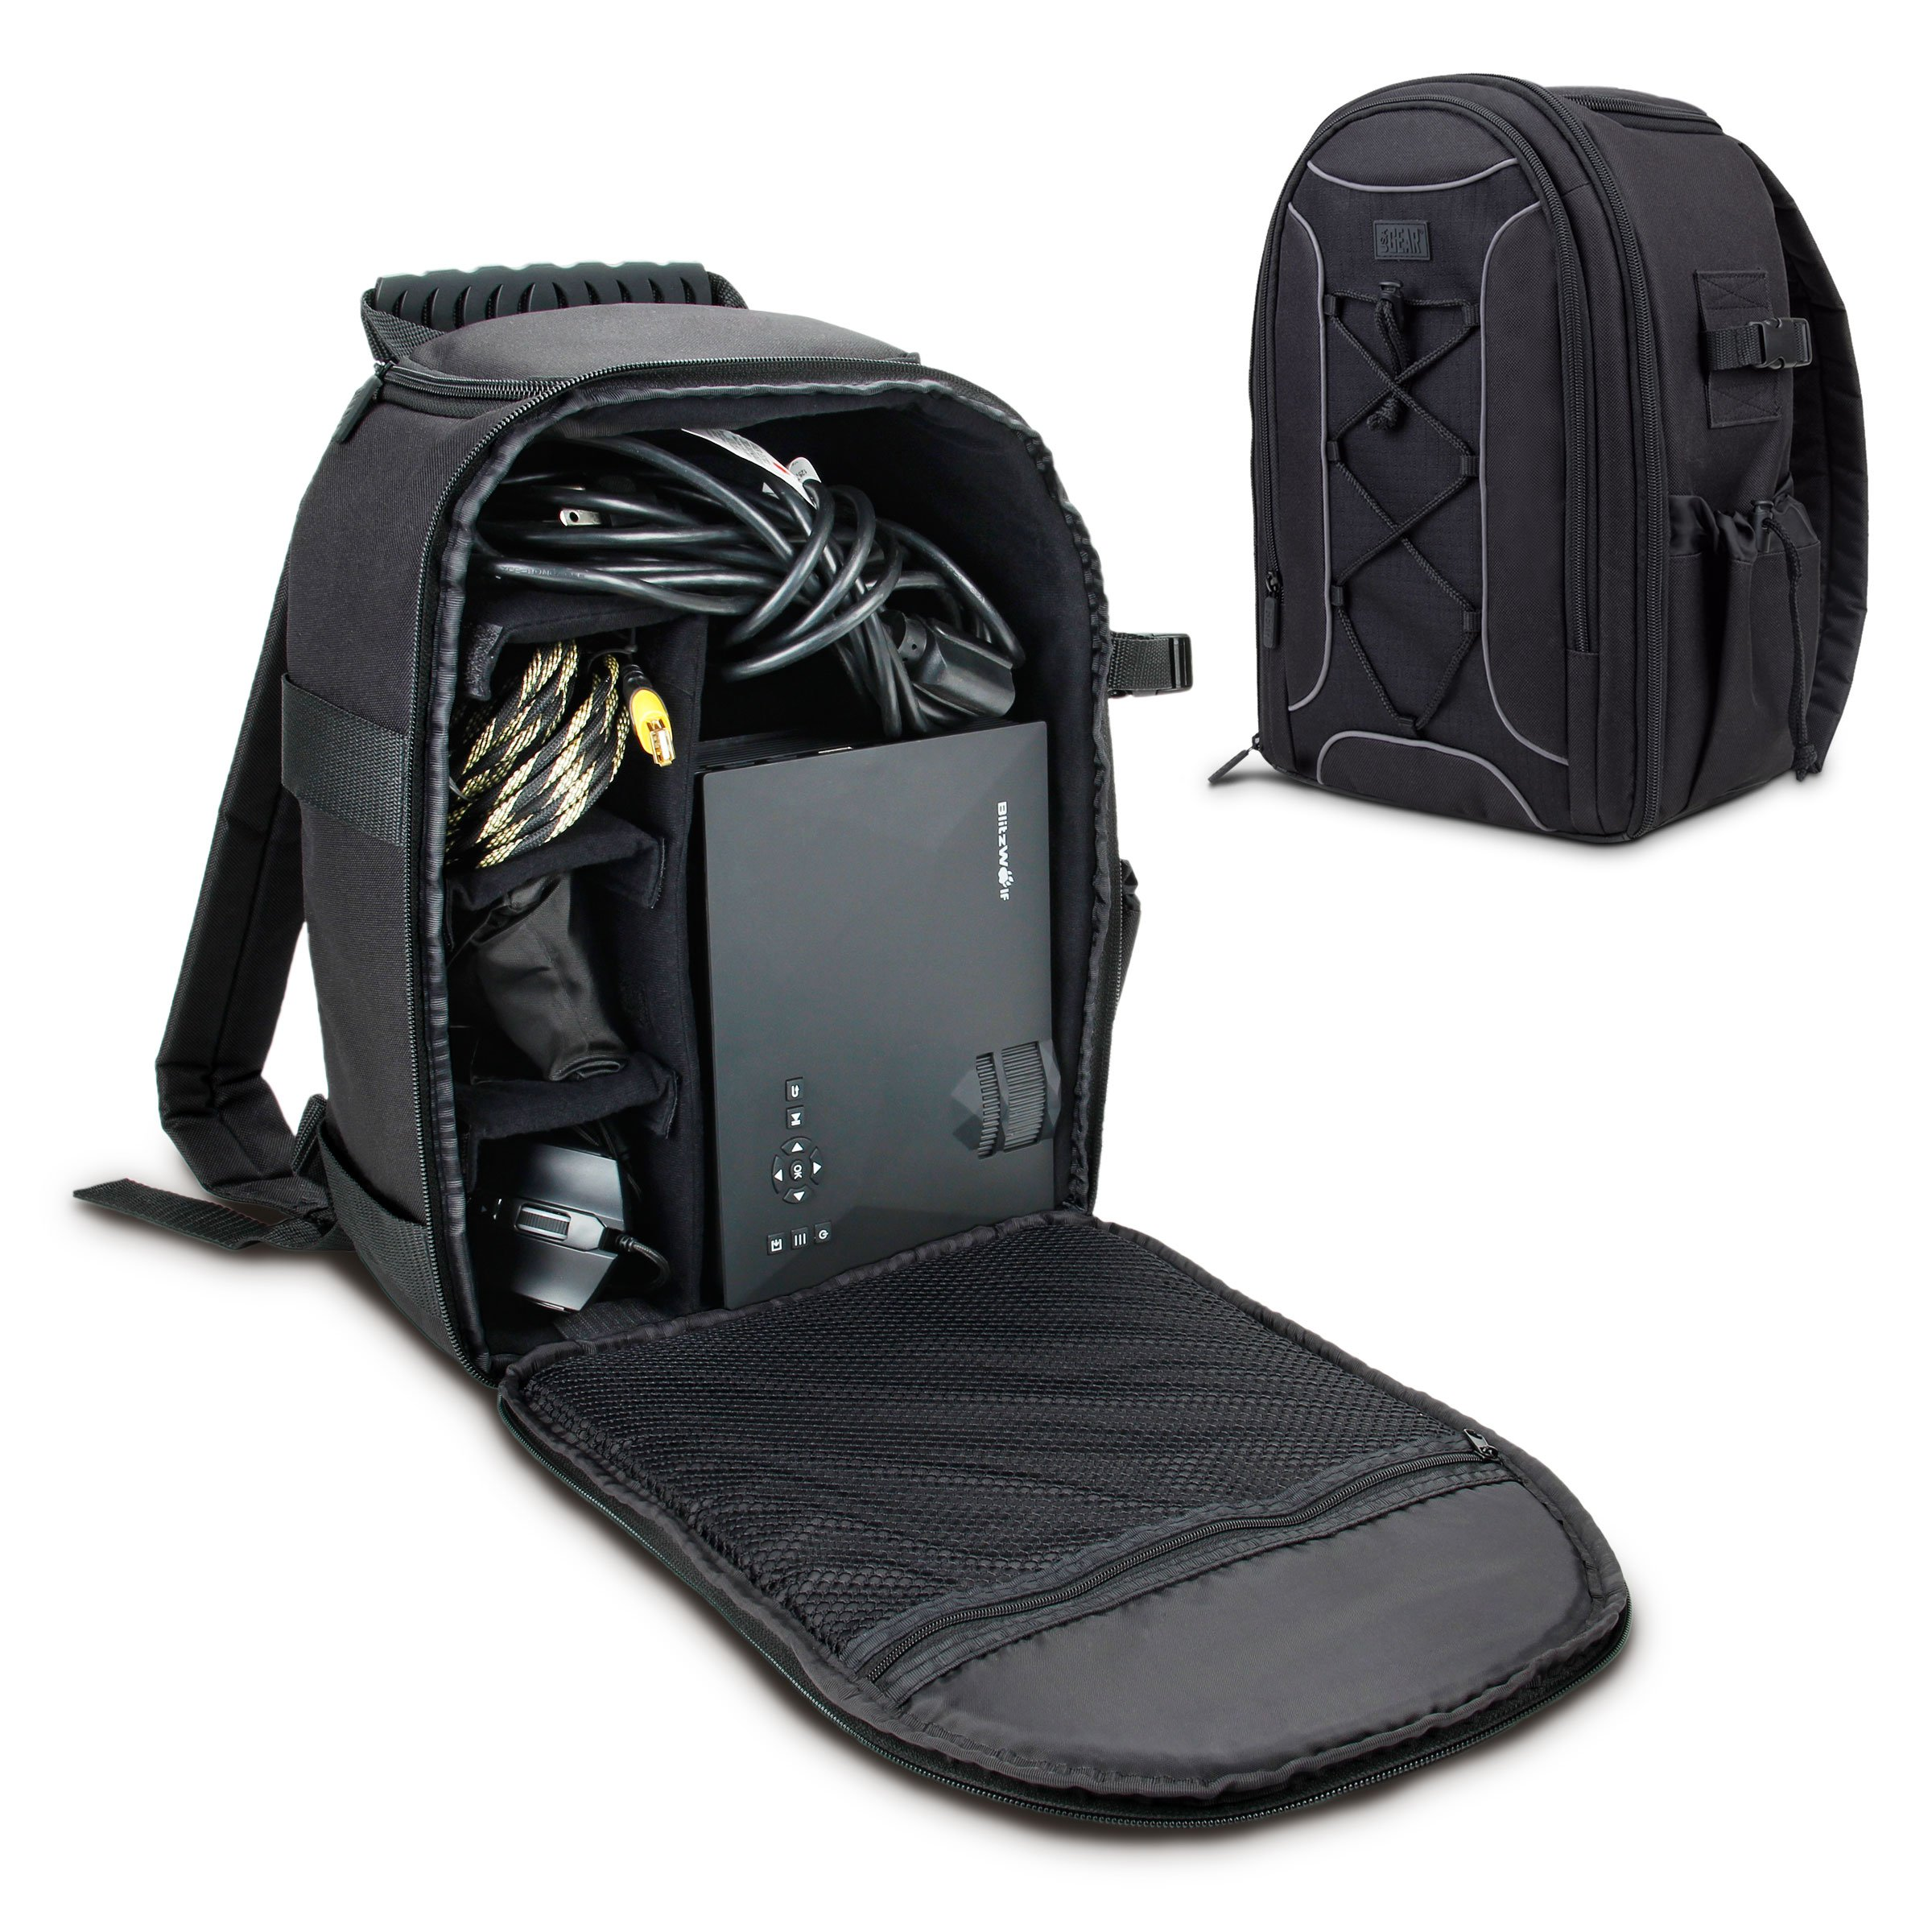 USA Gear Portable Projector Carrying Case with Custom Storage Dividers, Accessory Pockets and Waterproof Rain Cover - Compatible with ViewSonic, Epson, Optoma, Vivitek and More Portable Projectors